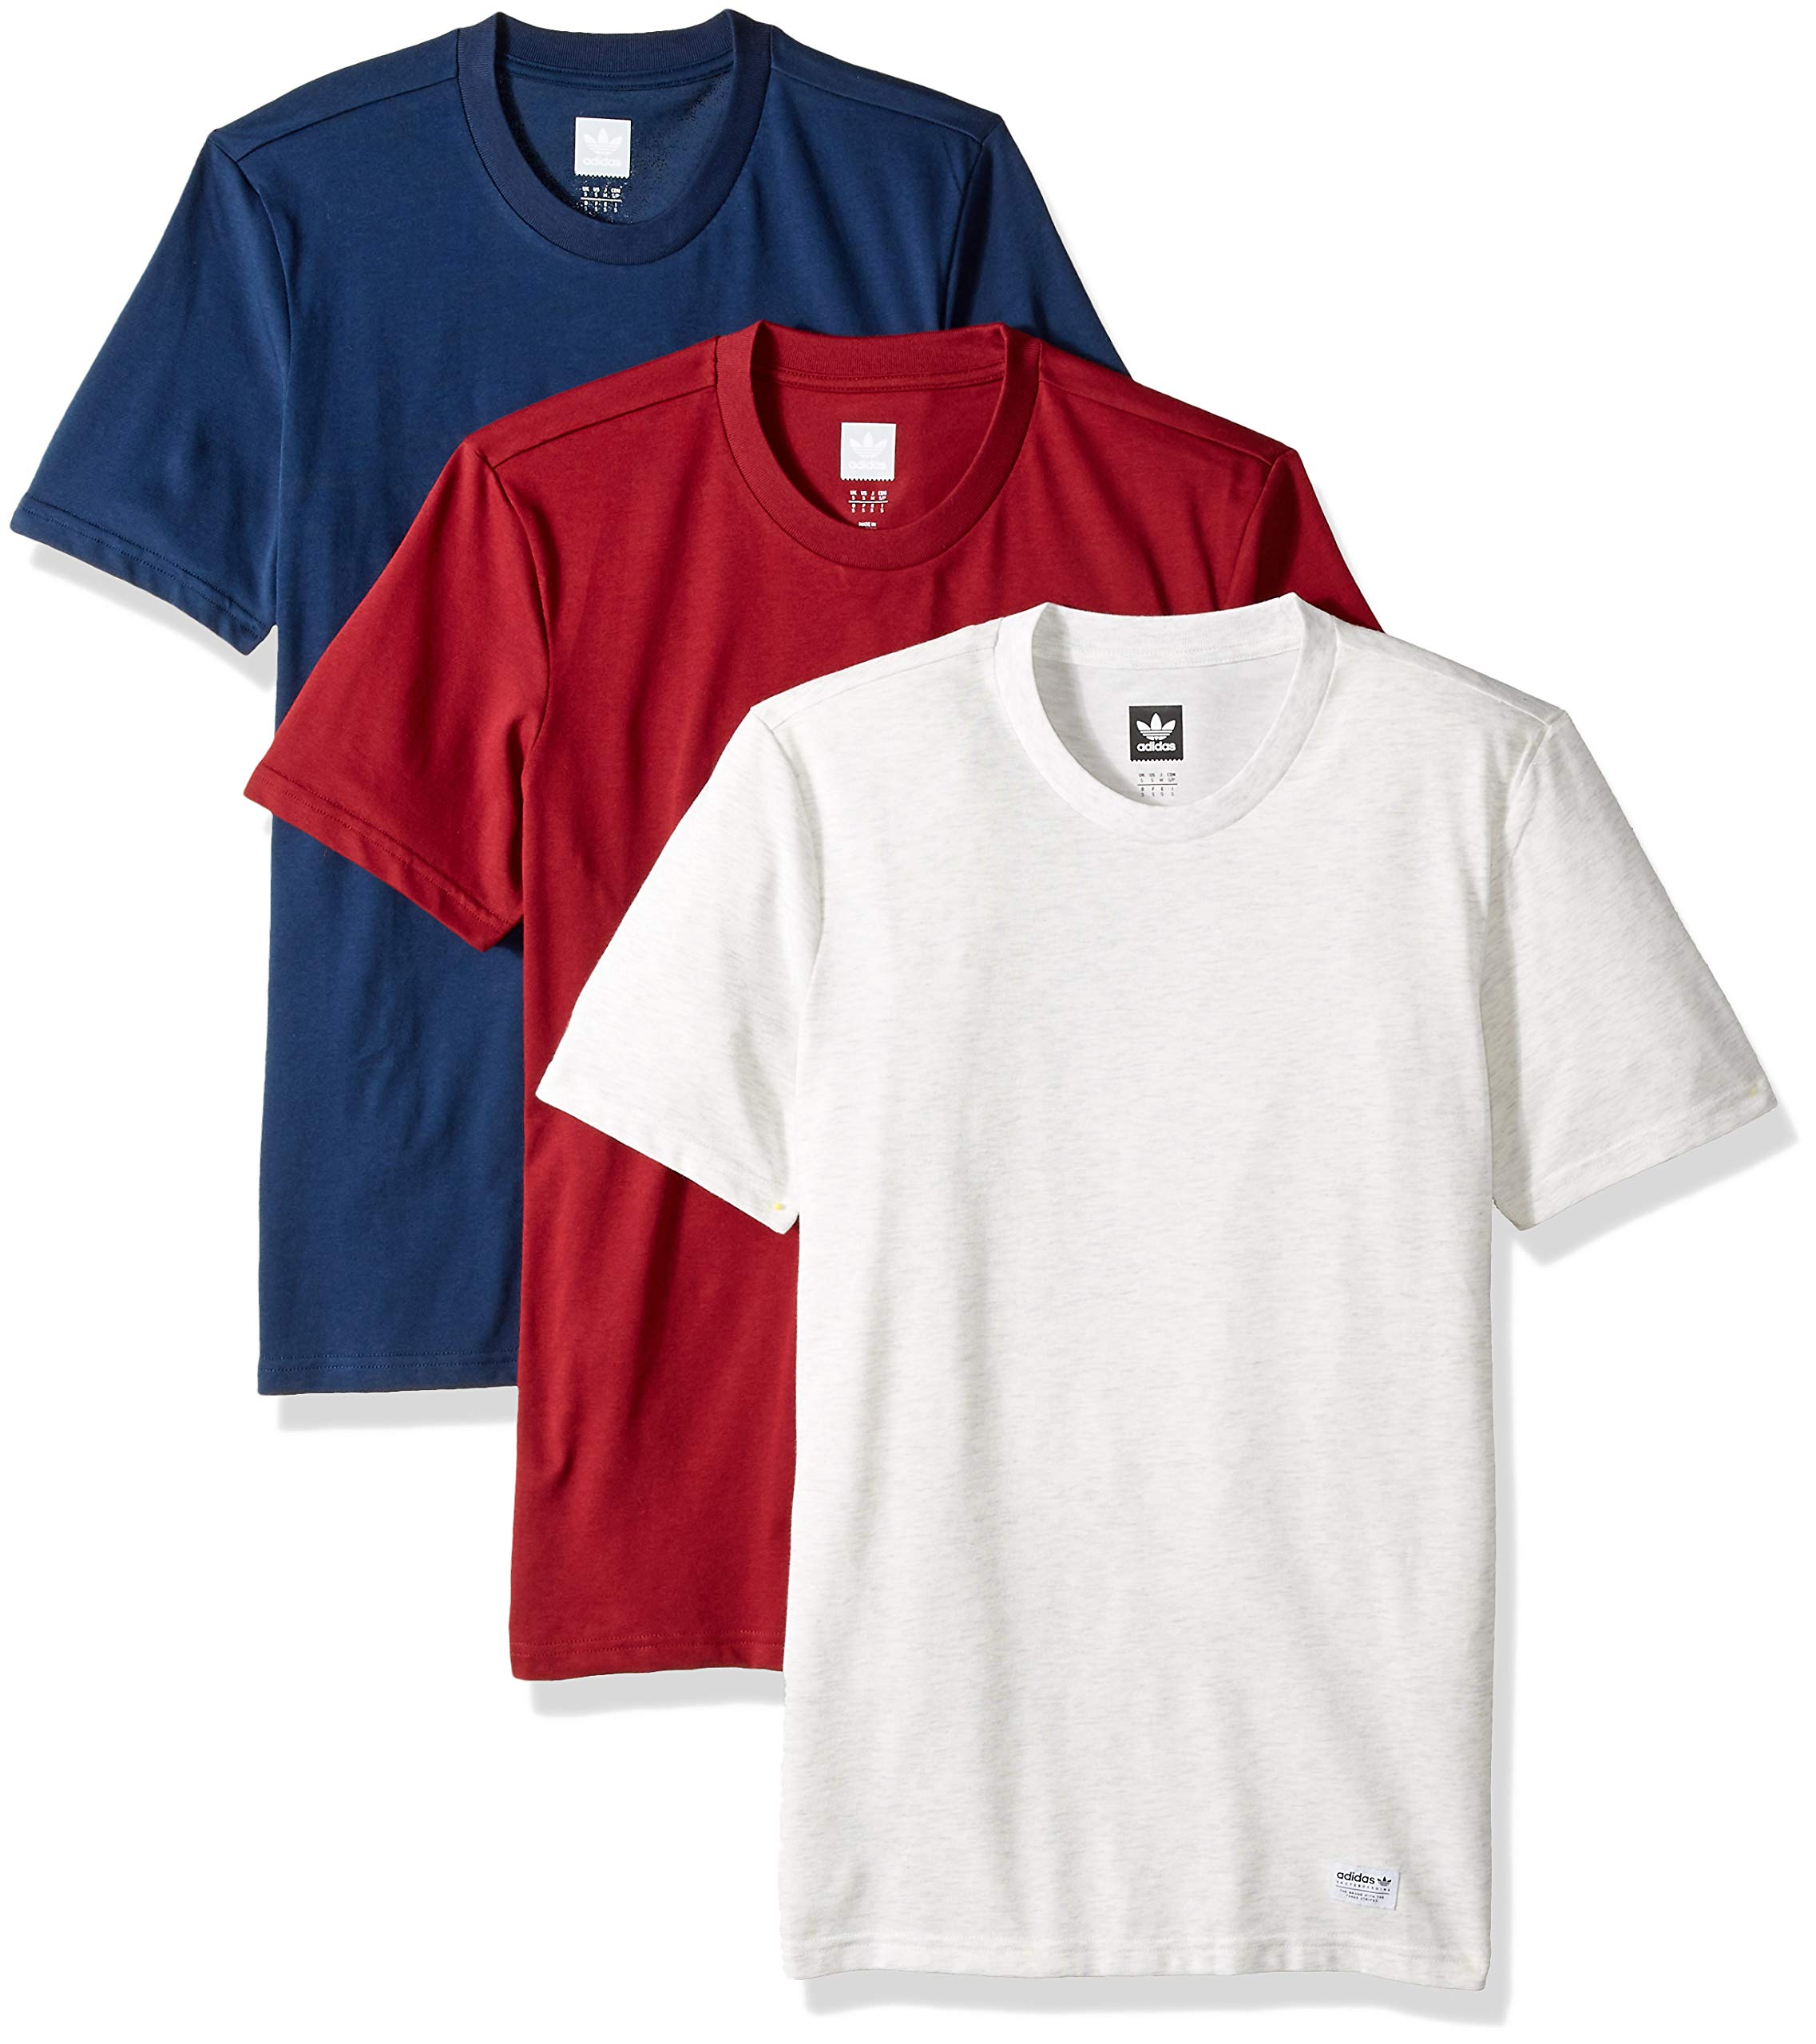 adidas Originals Men's Skateboarding 3 Pack Tees, Pale Melange Navy/Collegiate Burgundy, XL by adidas Originals (Image #1)